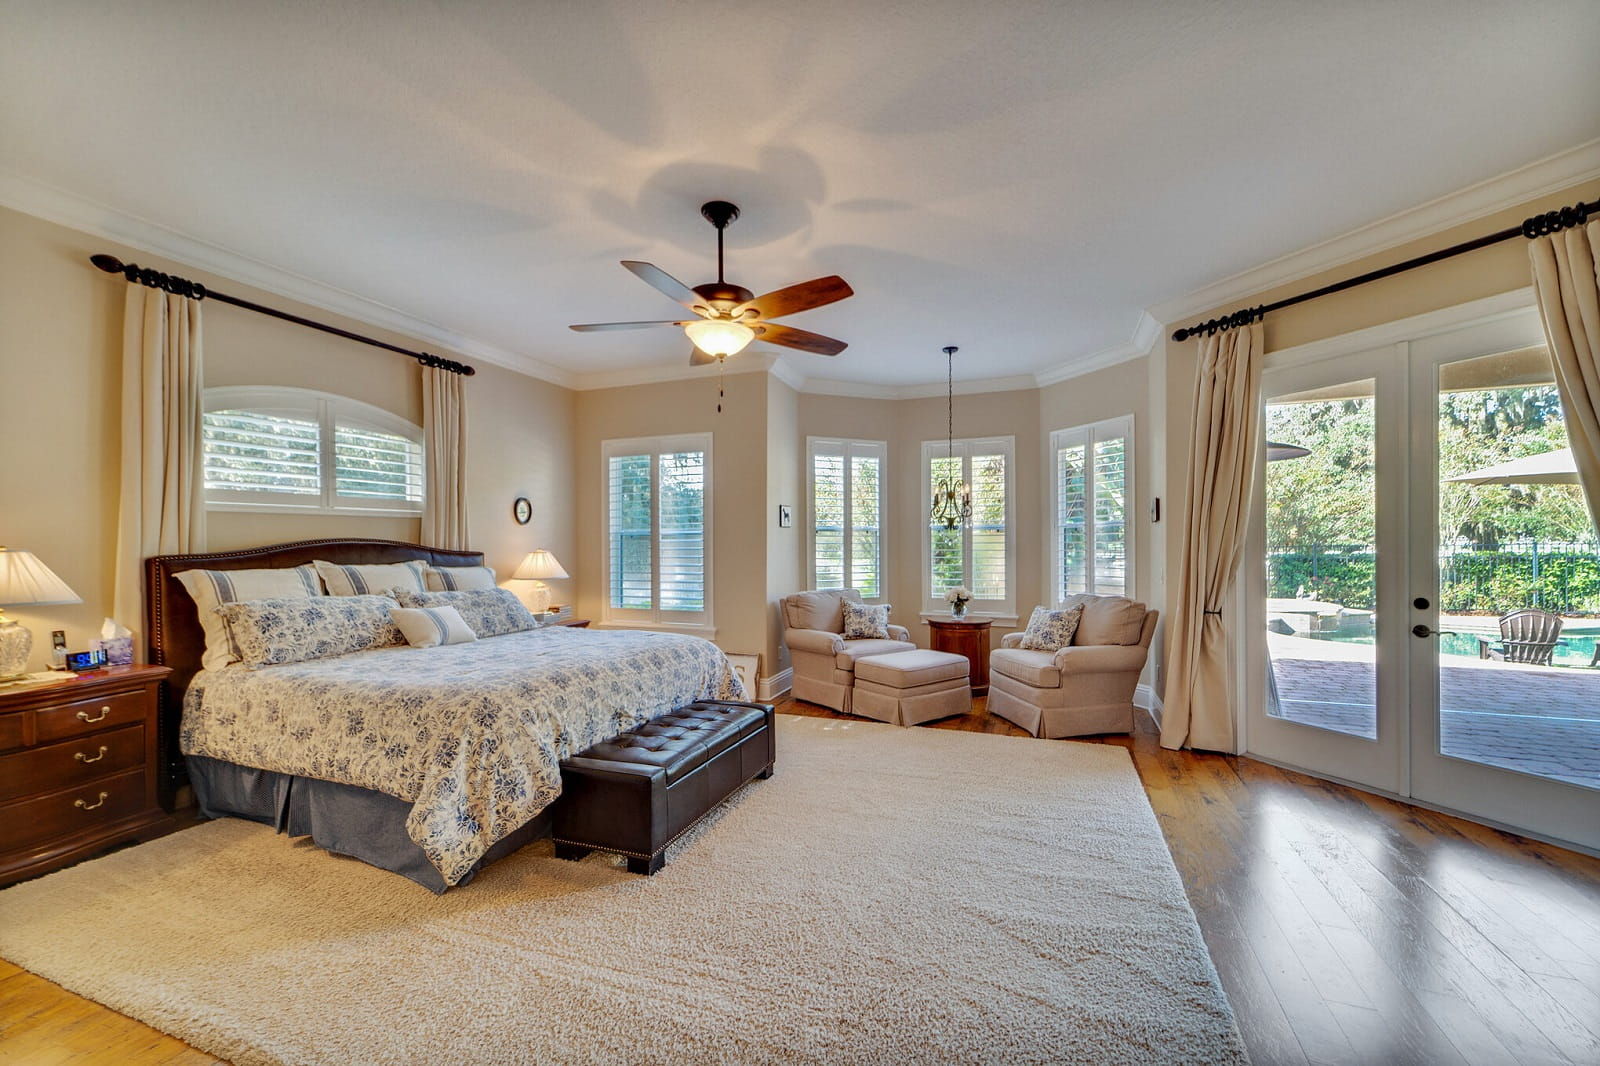 Real Estate Photography in Apopka - FL - USA - Bedroom View